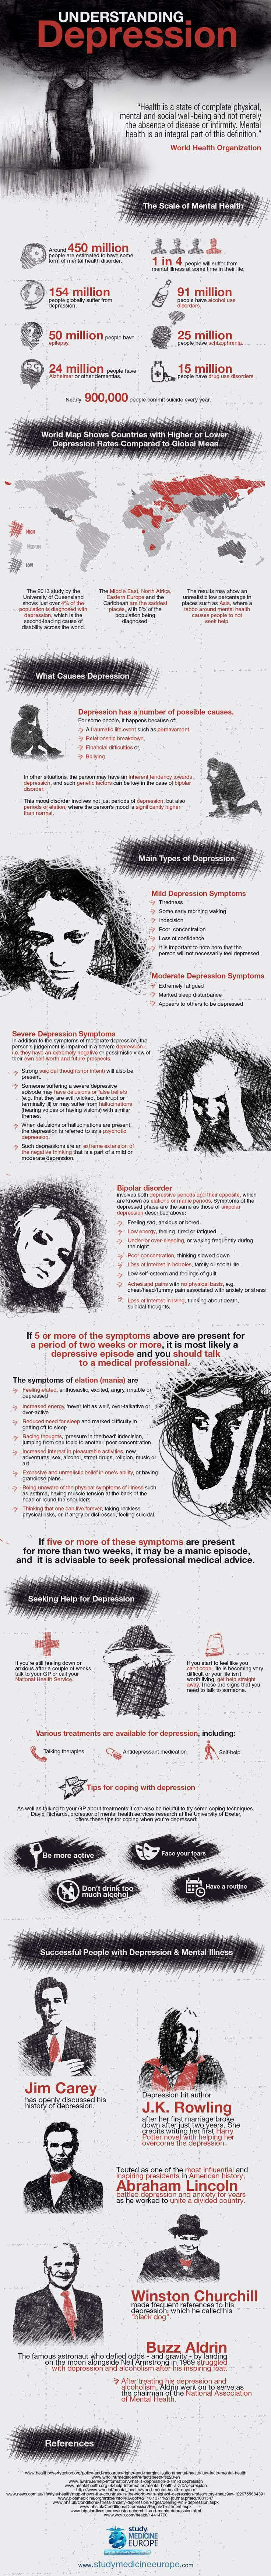 An Infographic to Help You Understand Depression - Whether induced by outside factors or an inherent tendency towards depression or bipolar disorder, seek help if symptoms are present for two or more weeks. (View only) Depression and Bipolar Support Alliance Website: http://www.dbsalliance.org/site/PageServer?pagename=home